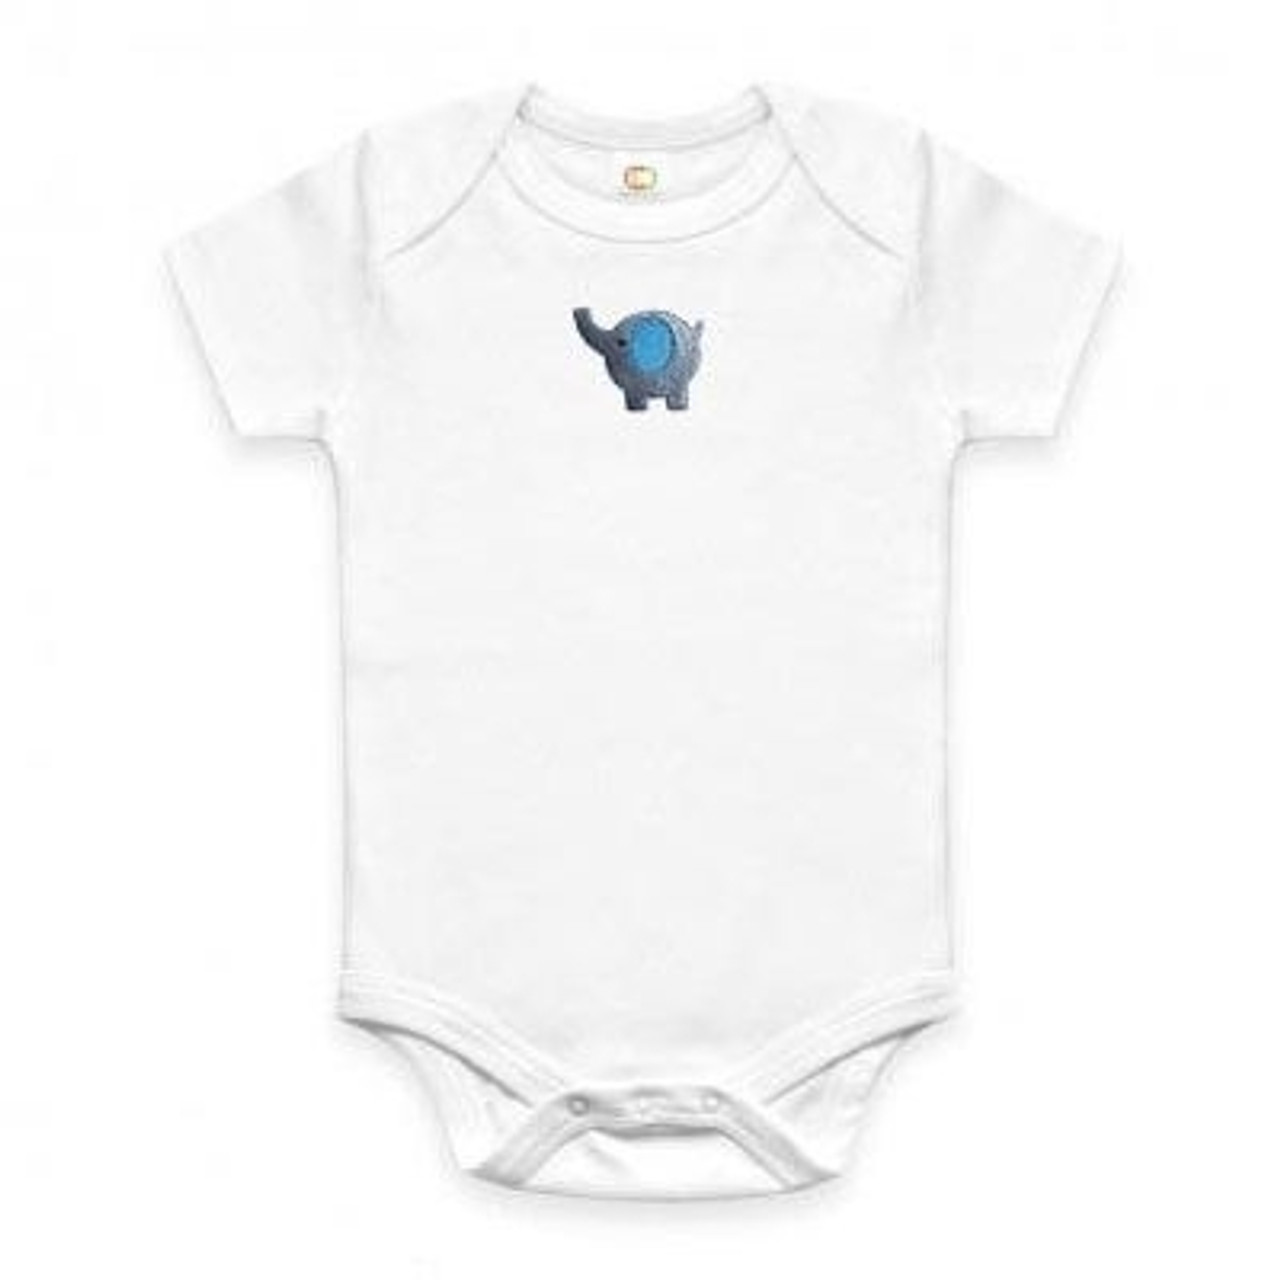 Baby Onesie with Embroidered Elephant